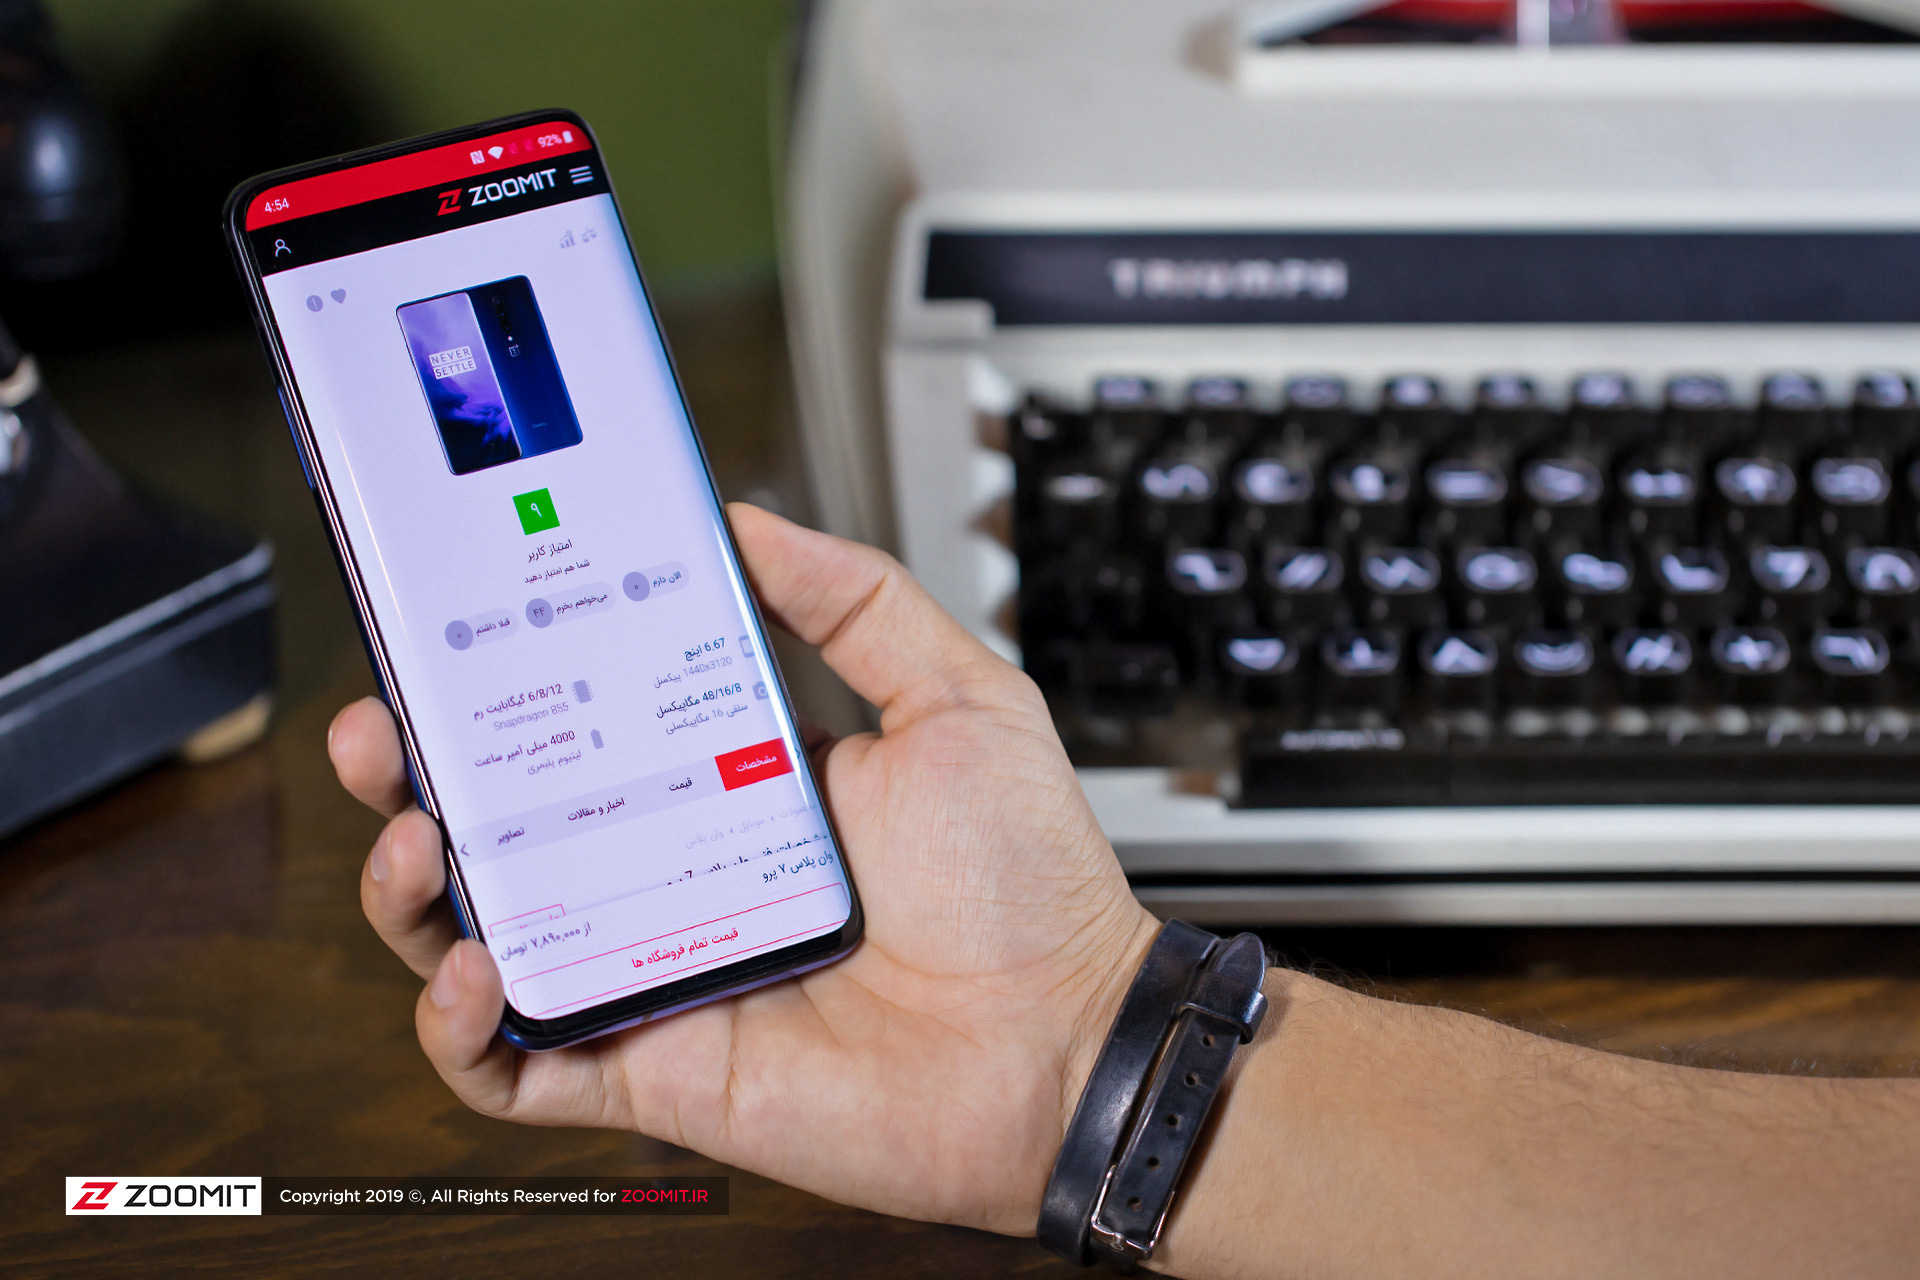 <a class='tagColor' href='/Tags/Archive/وان پلاس'>وان پلاس</a> 7 پرو / OnePlus 7 Pro